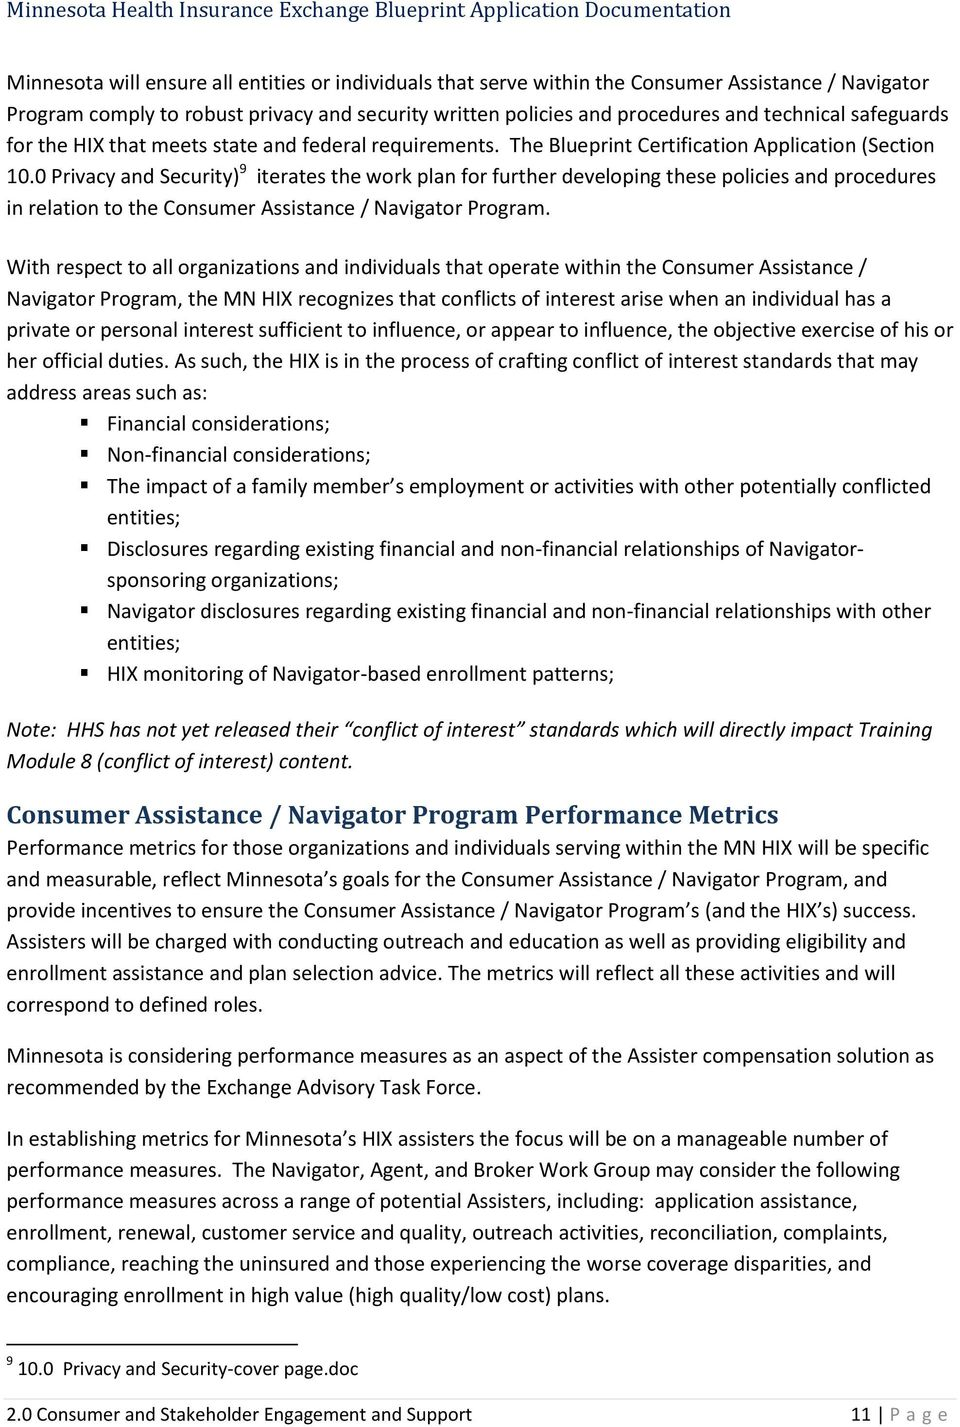 0 Privacy and Security) 9 iterates the work plan for further developing these policies and procedures in relation to the Consumer Assistance / Navigator Program.